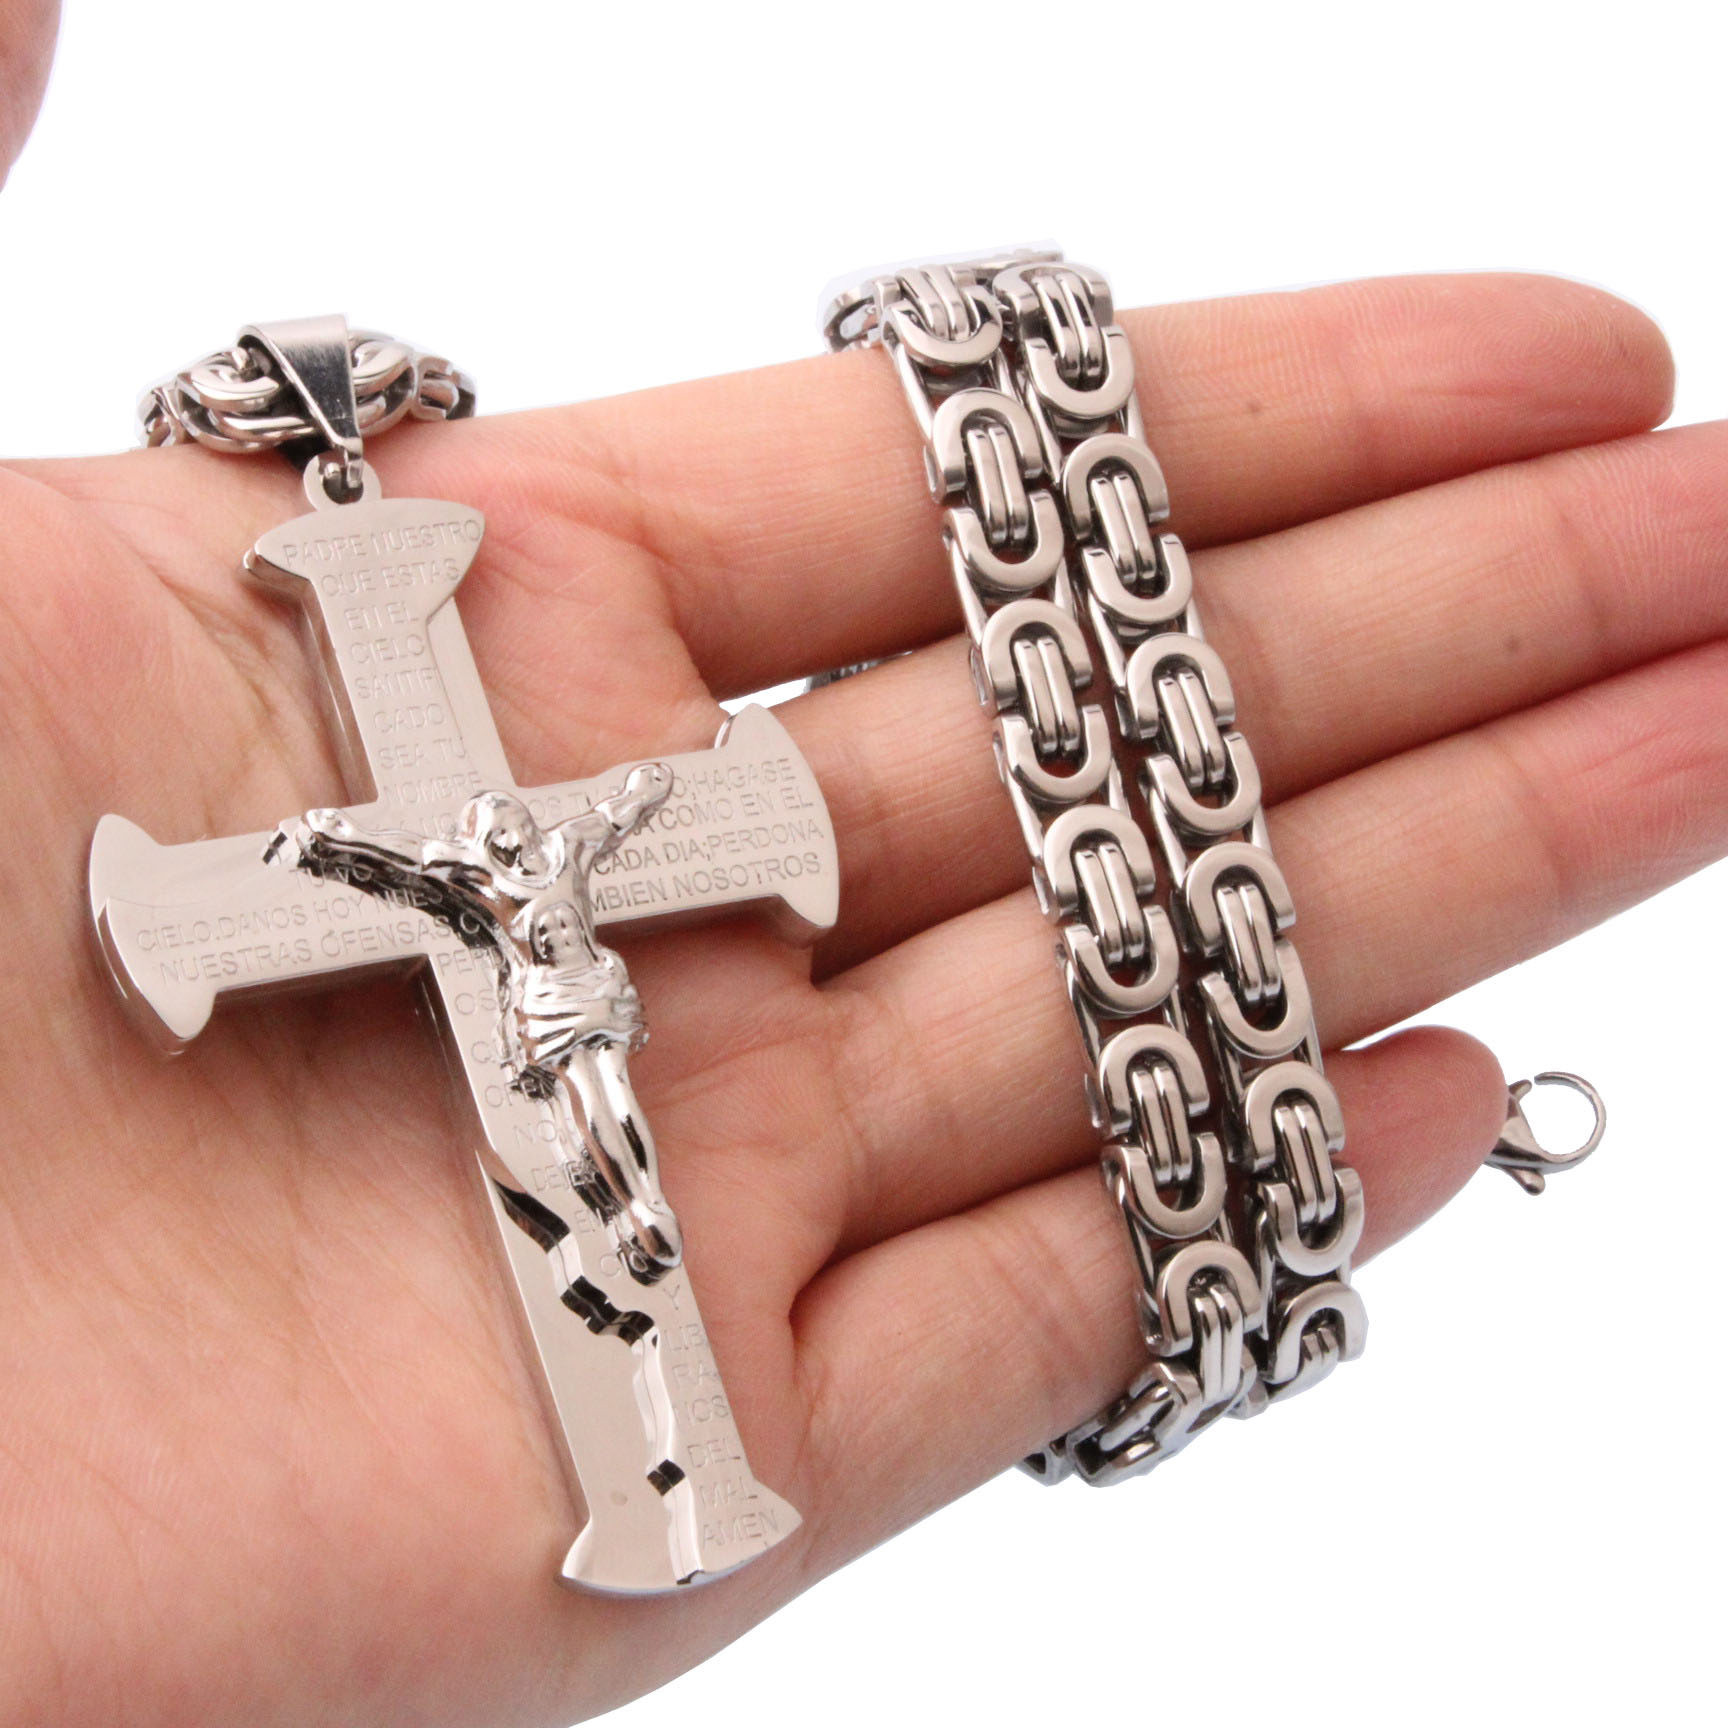 Hot Sale Christian Jesus Cross Pendant Necklaces 6mm Thick Link Byzantine Chain Stainless Steel Silver Men Jewelry Gift in Chain Necklaces from Jewelry Accessories